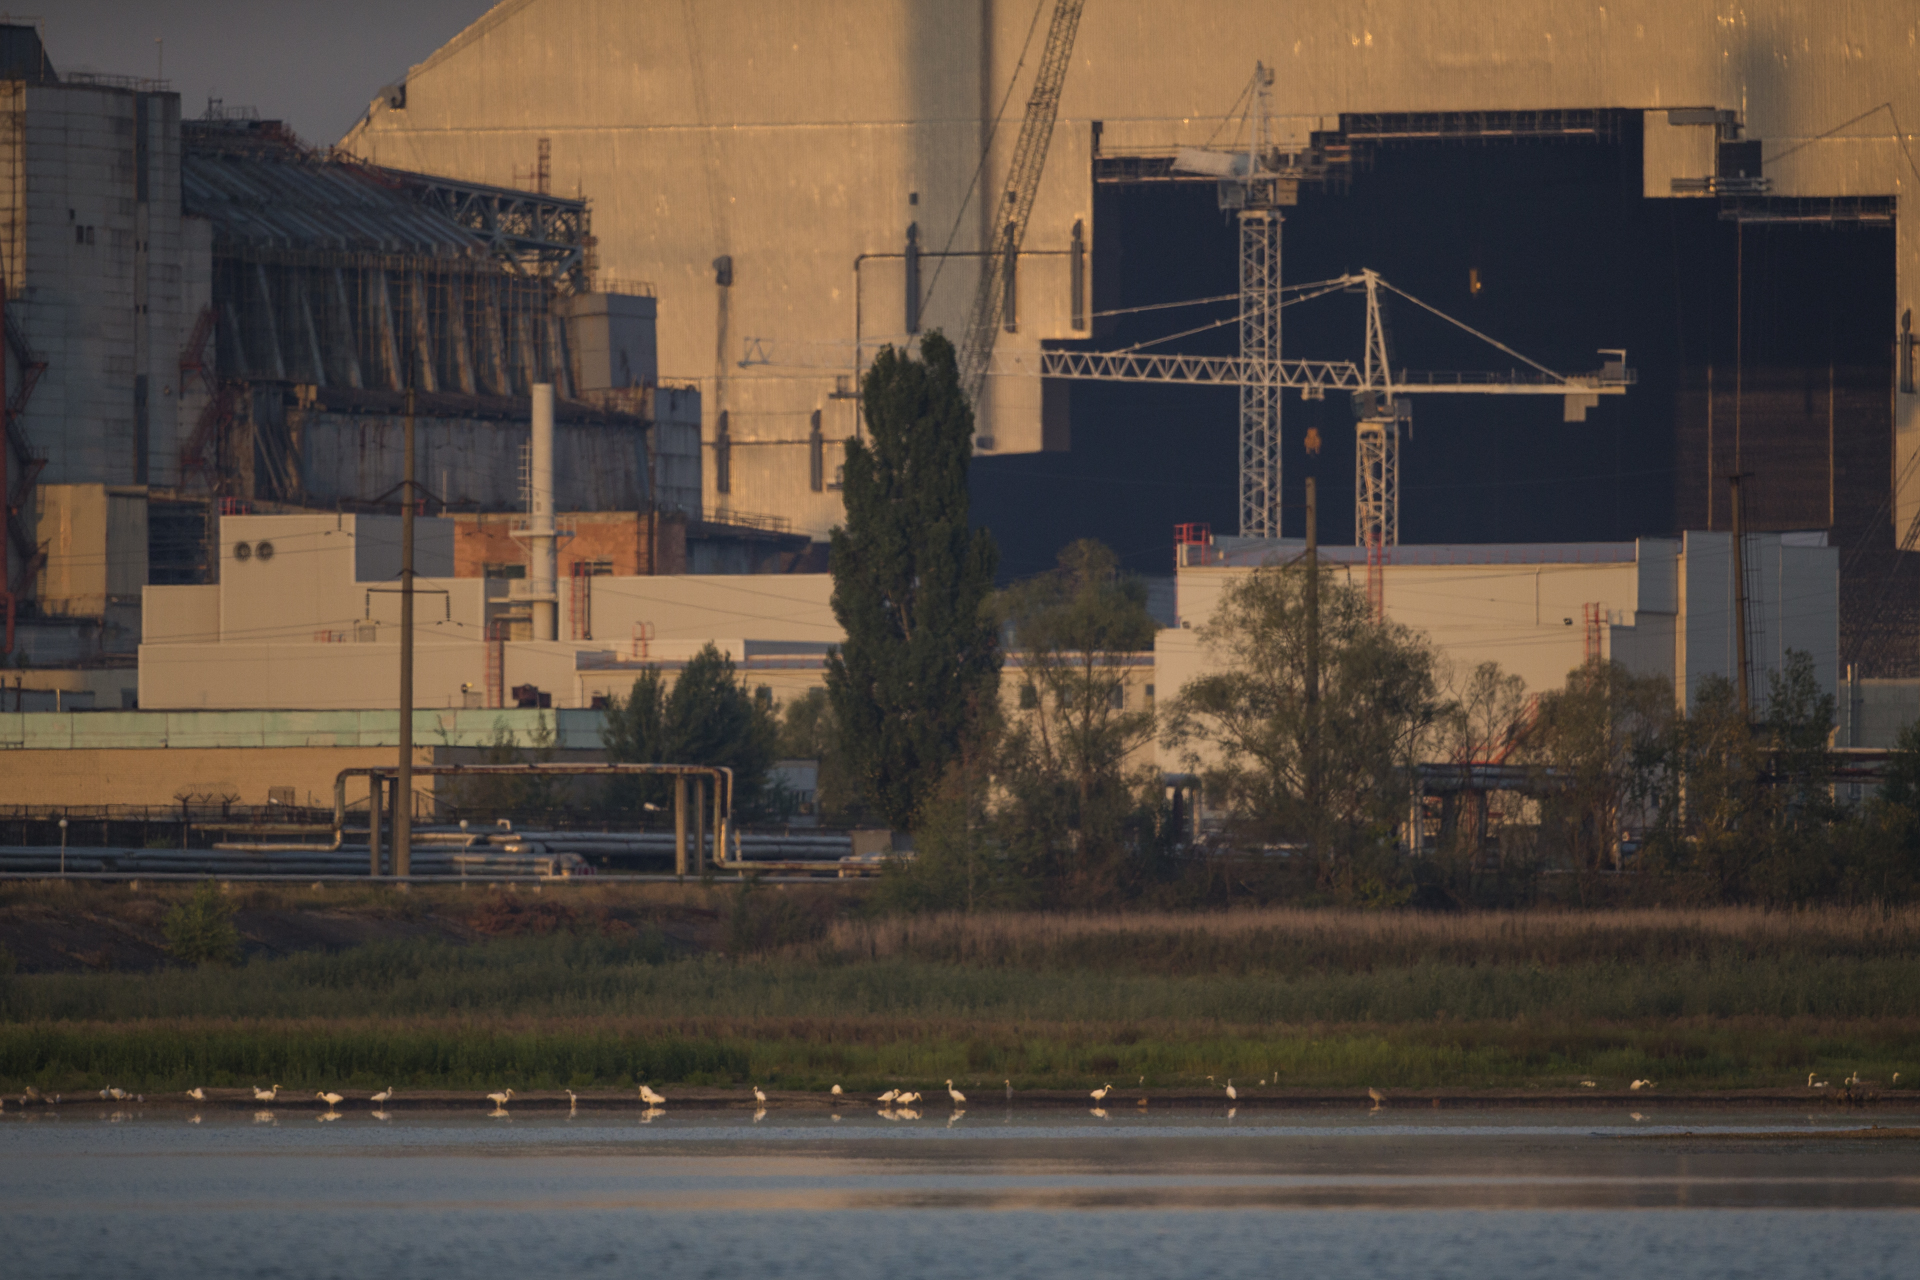 The cooling ponds in the shadow of the reactor are home to healthy populations of fish and amphibians attracting vast flocks of water birds.